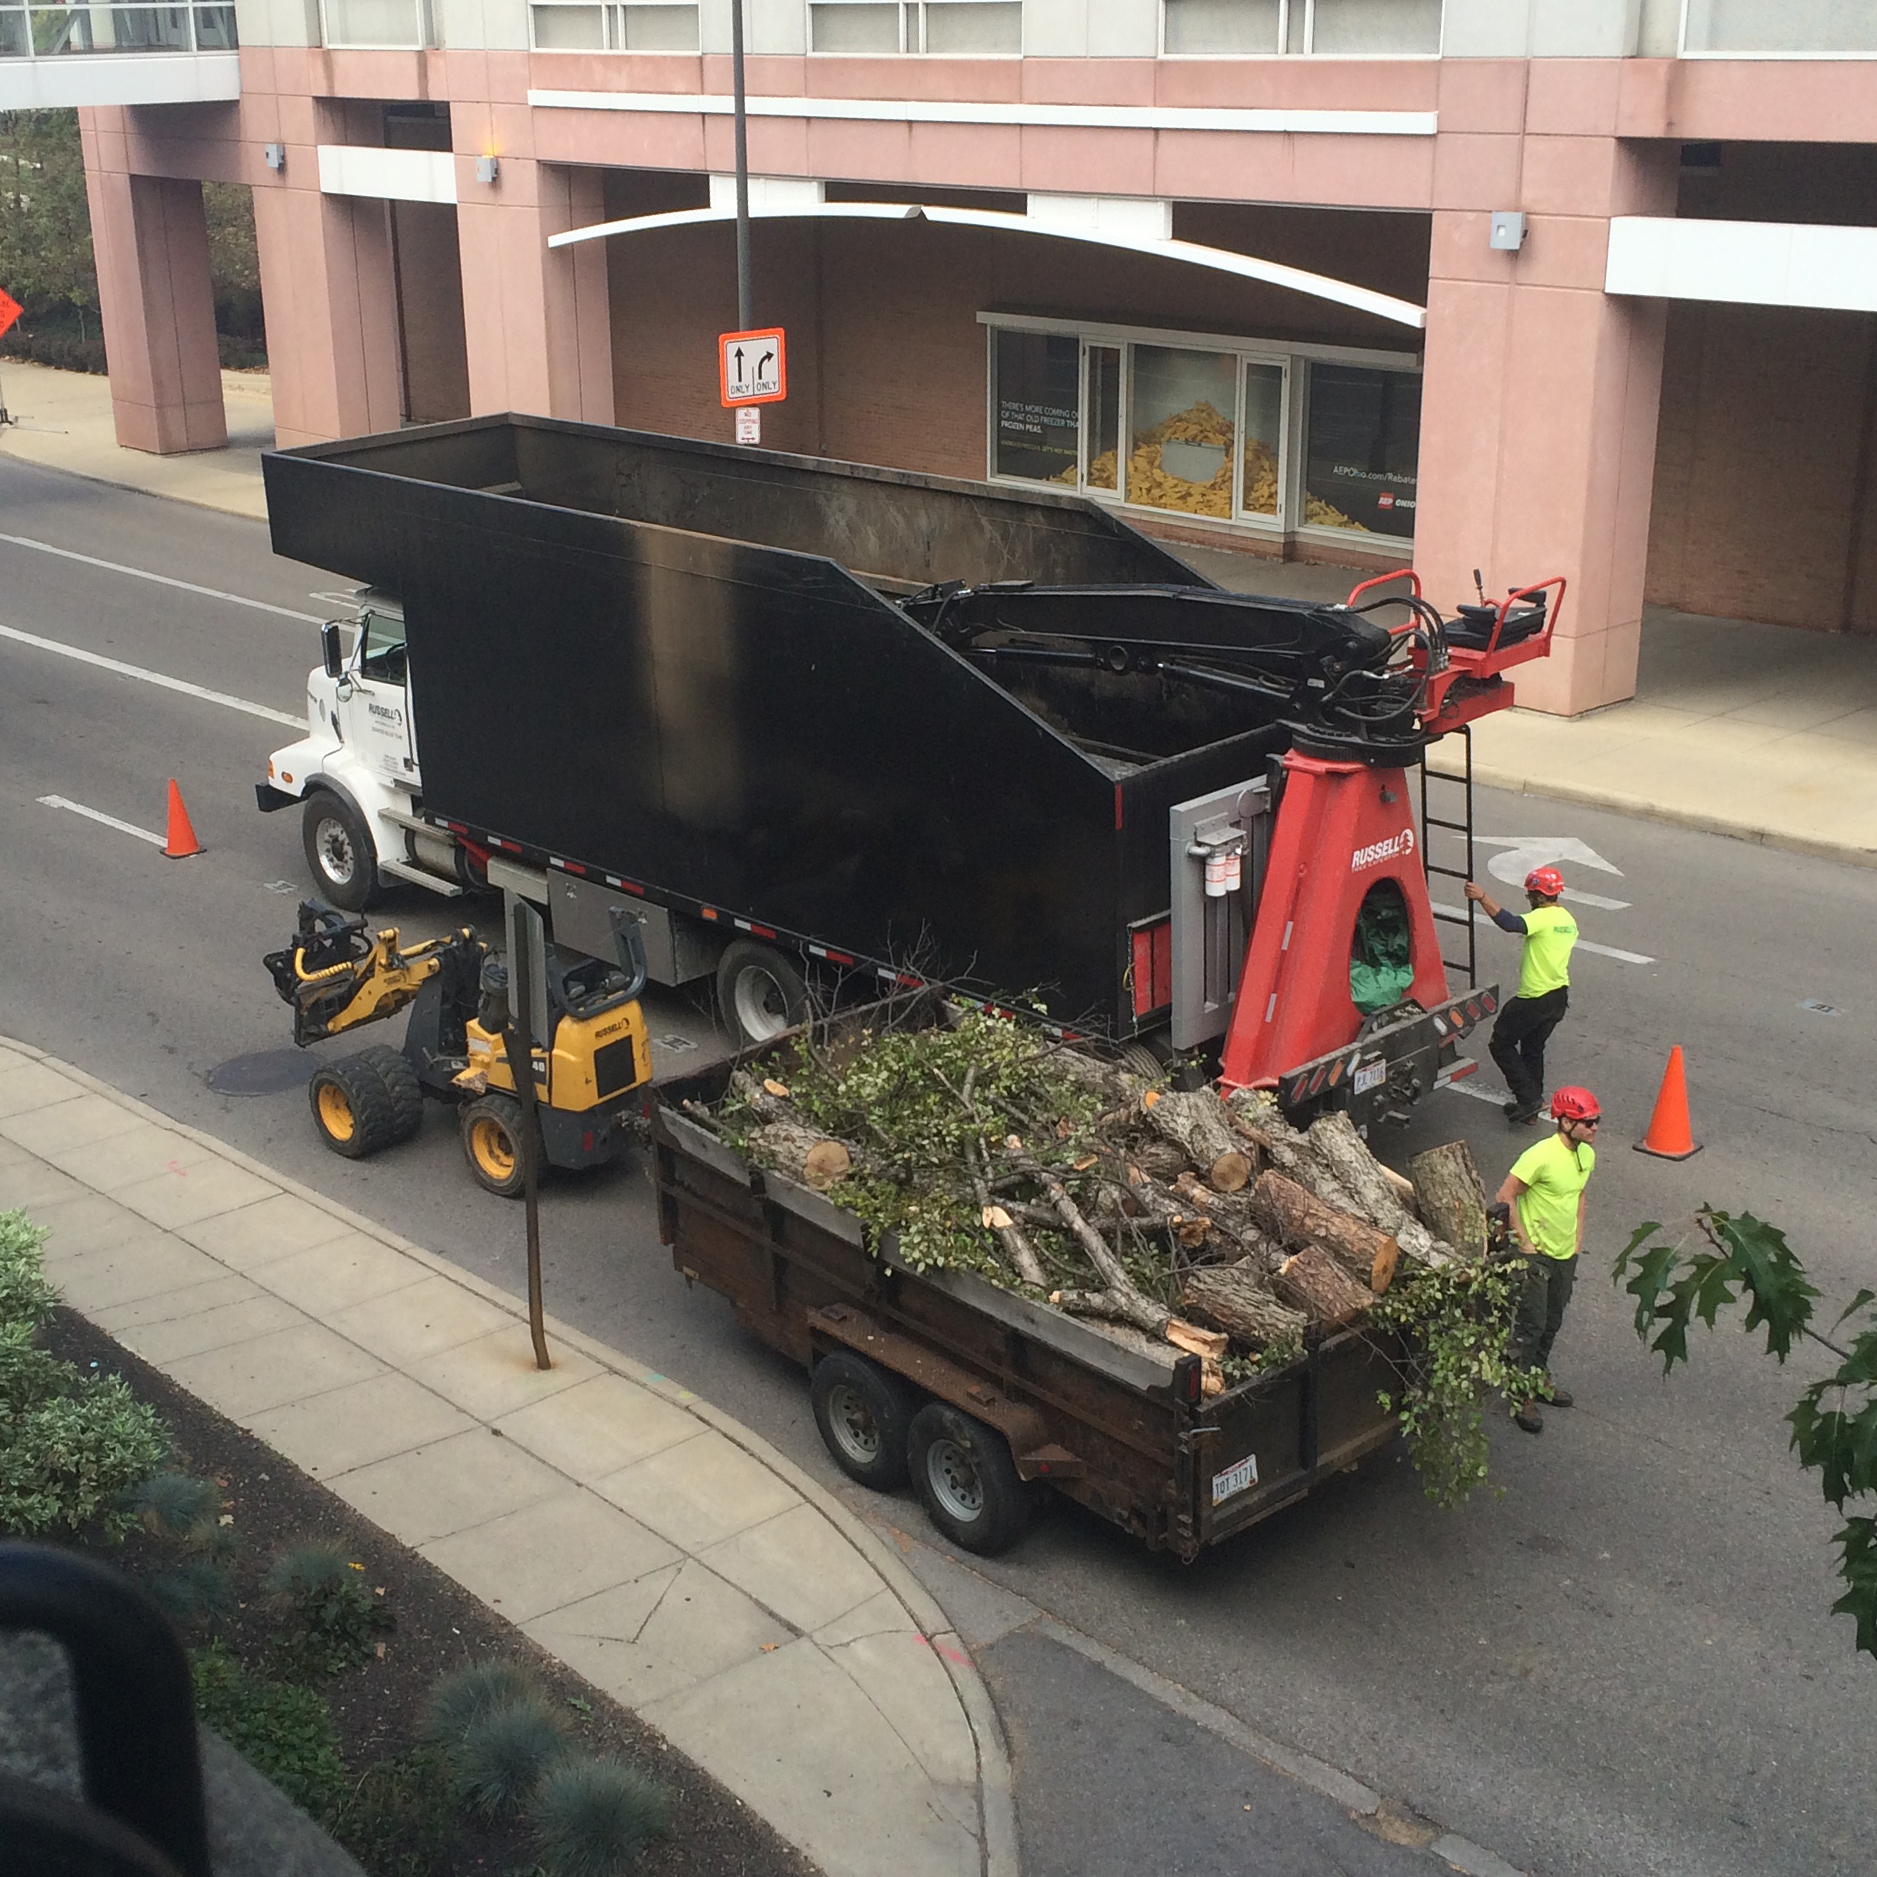 Tree Services - It's important that your business is beautiful inside and out - We're here to provide all the tree services needed to make your company's trees be healthy and beautiful.Click Here to See Services